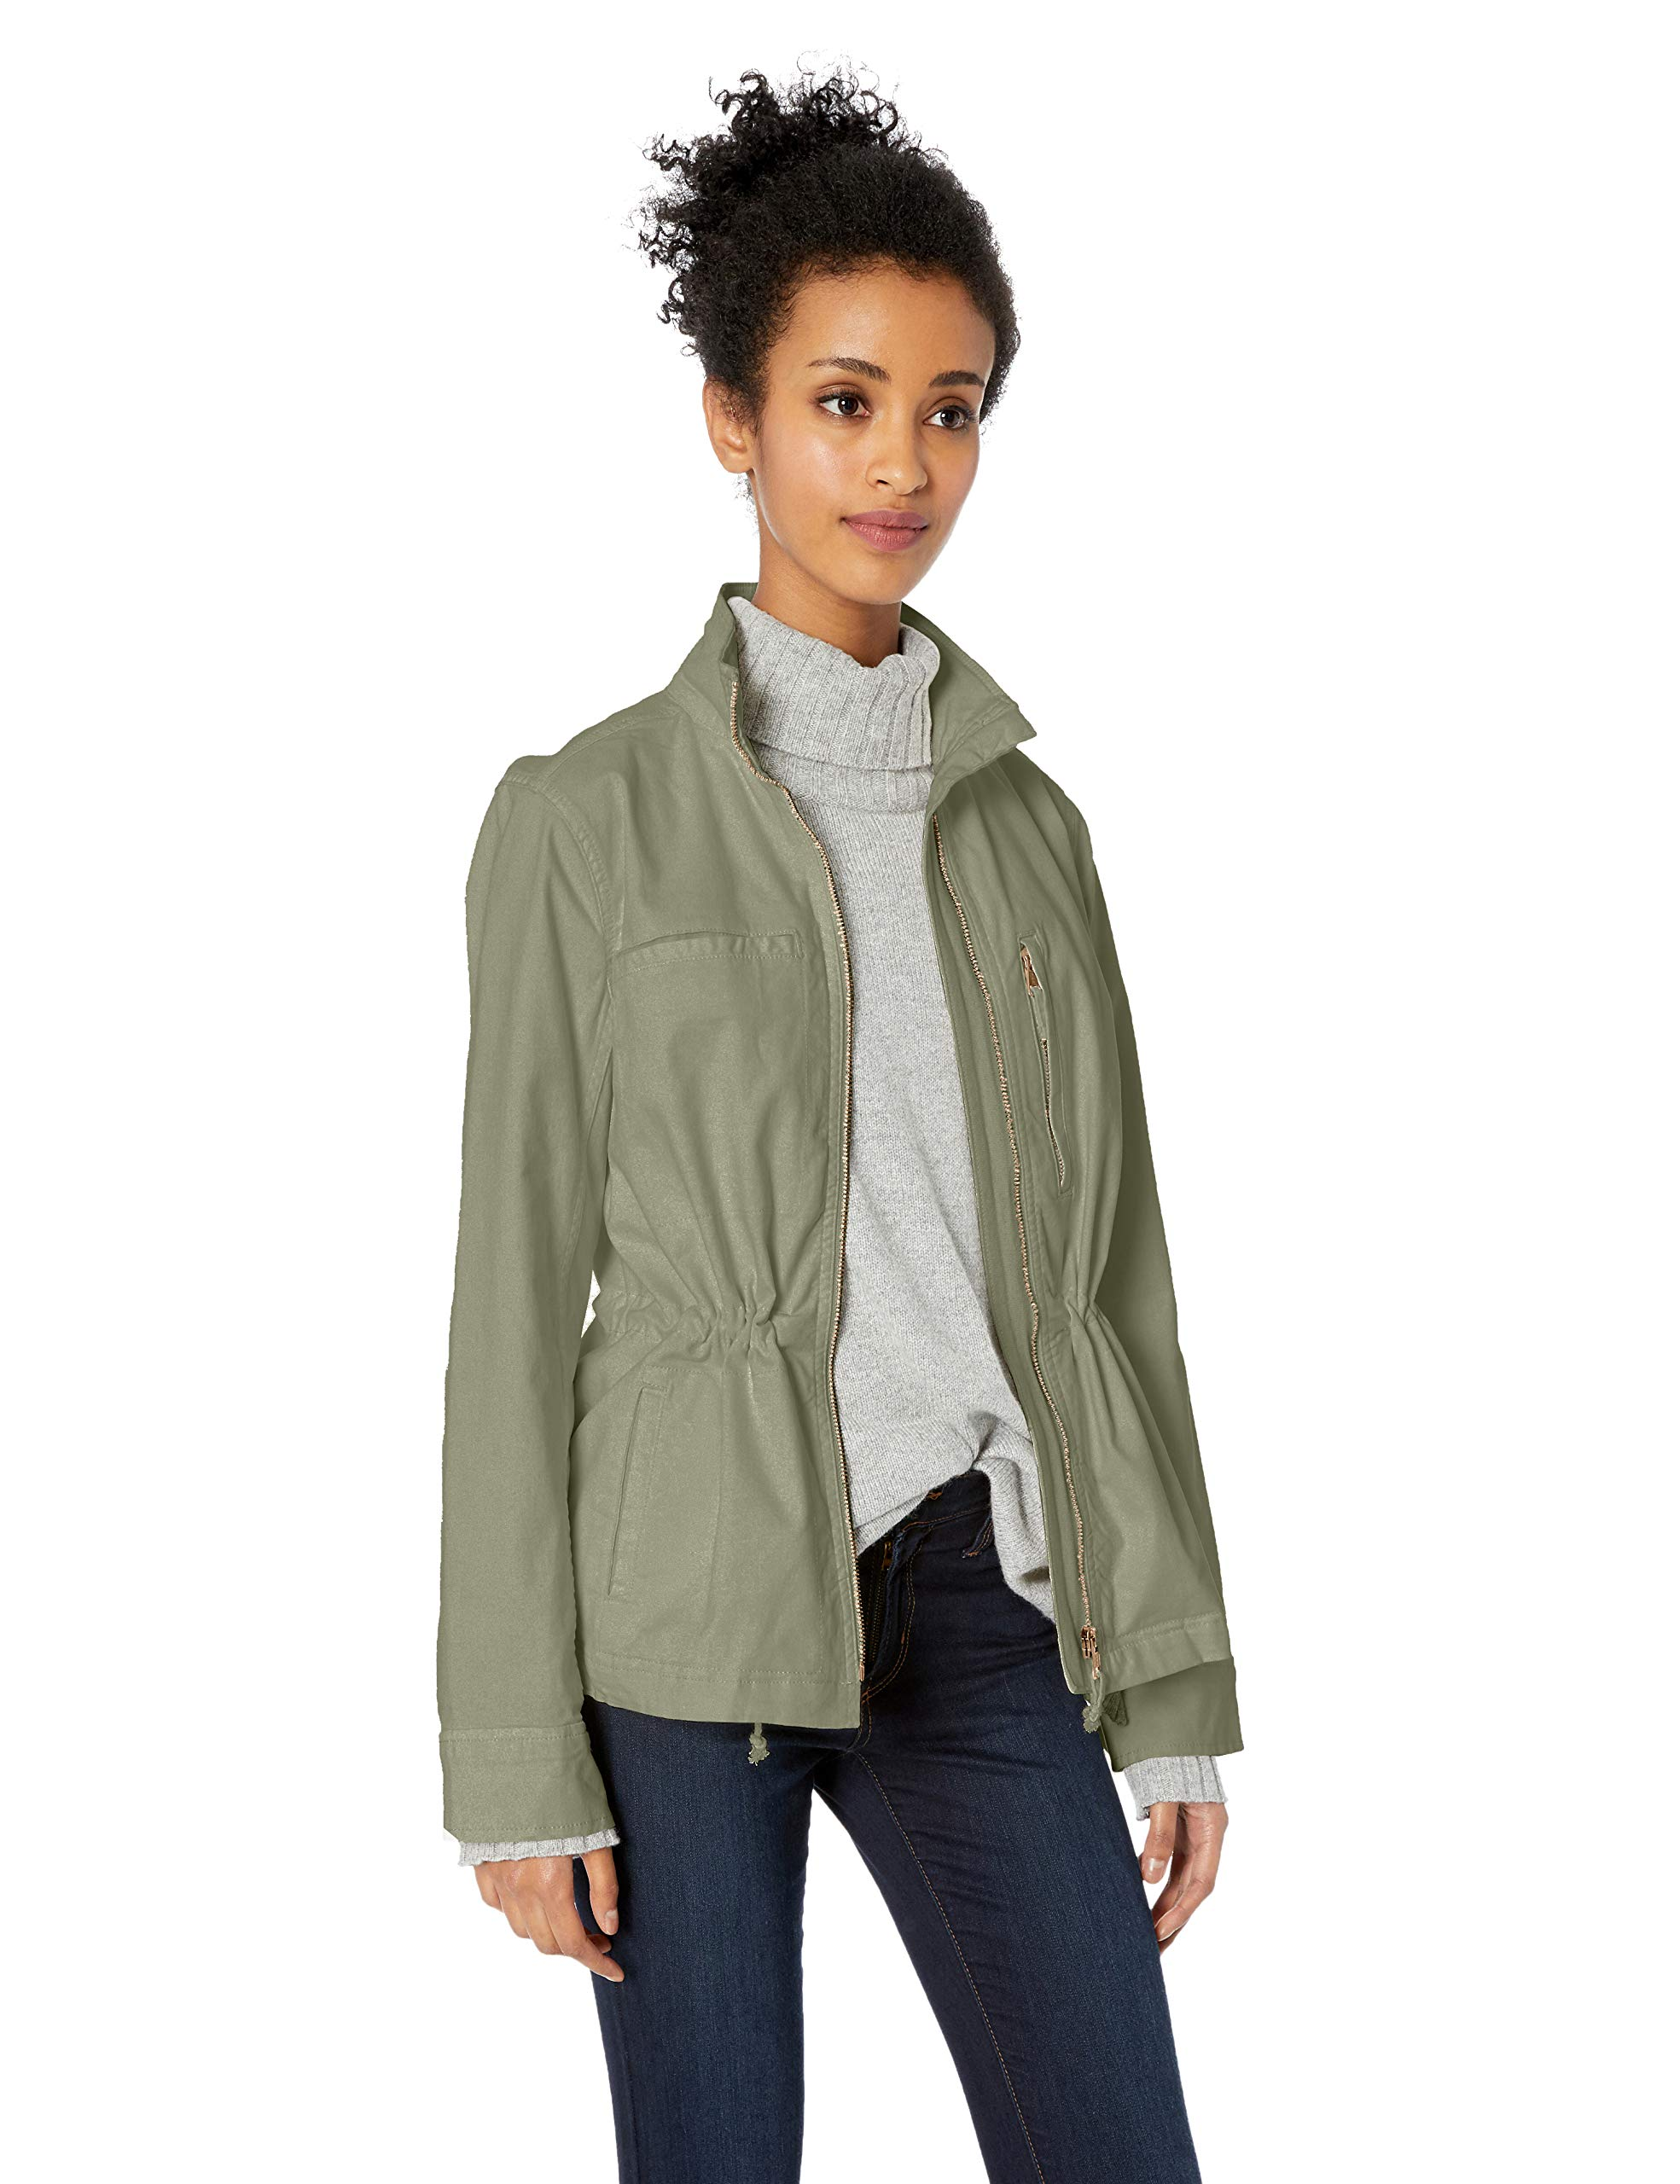 60bf399ce0 Amazon Brand - Daily Ritual Women's Military Cargo Jacket - Ultimate  Fashion Trends for Girls | Fashion's Girl